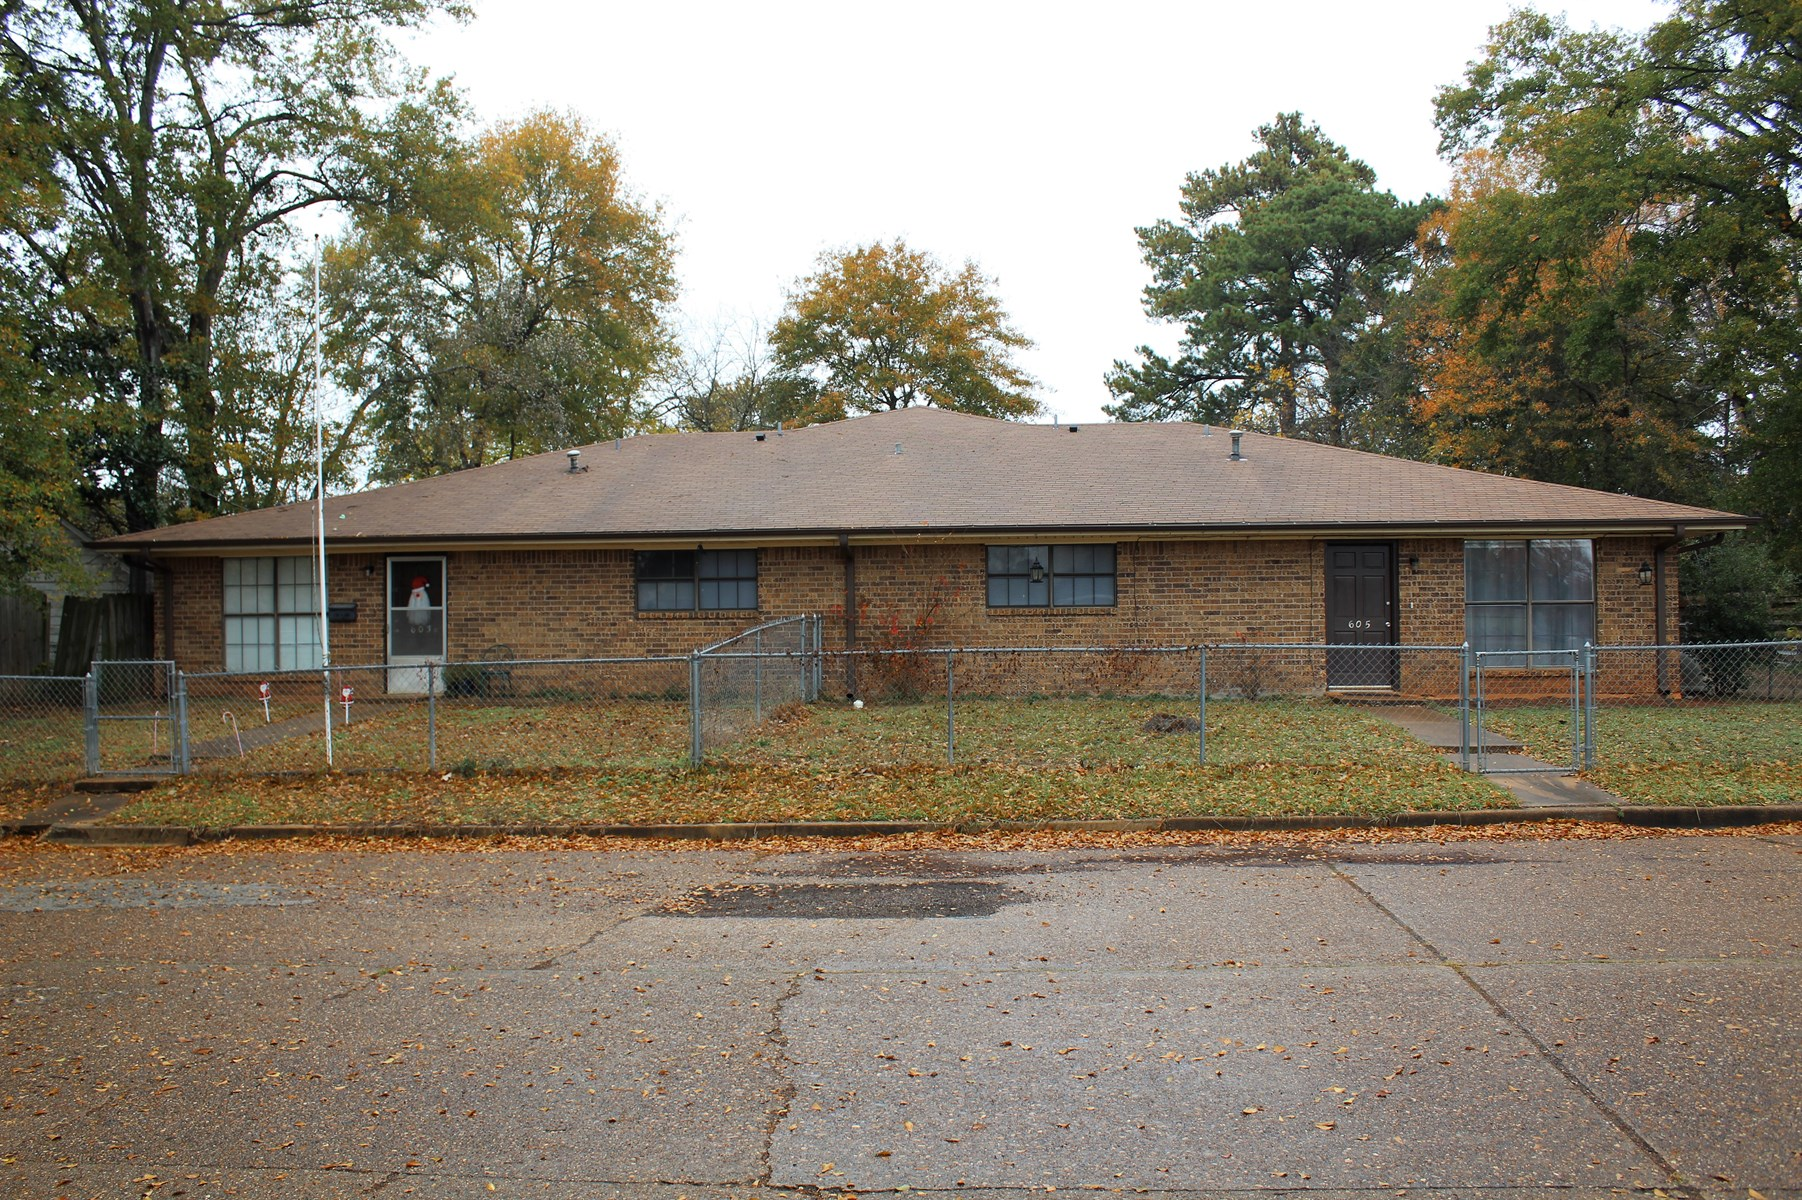 Duplex For Sale In Kilgore, TX Investment Property